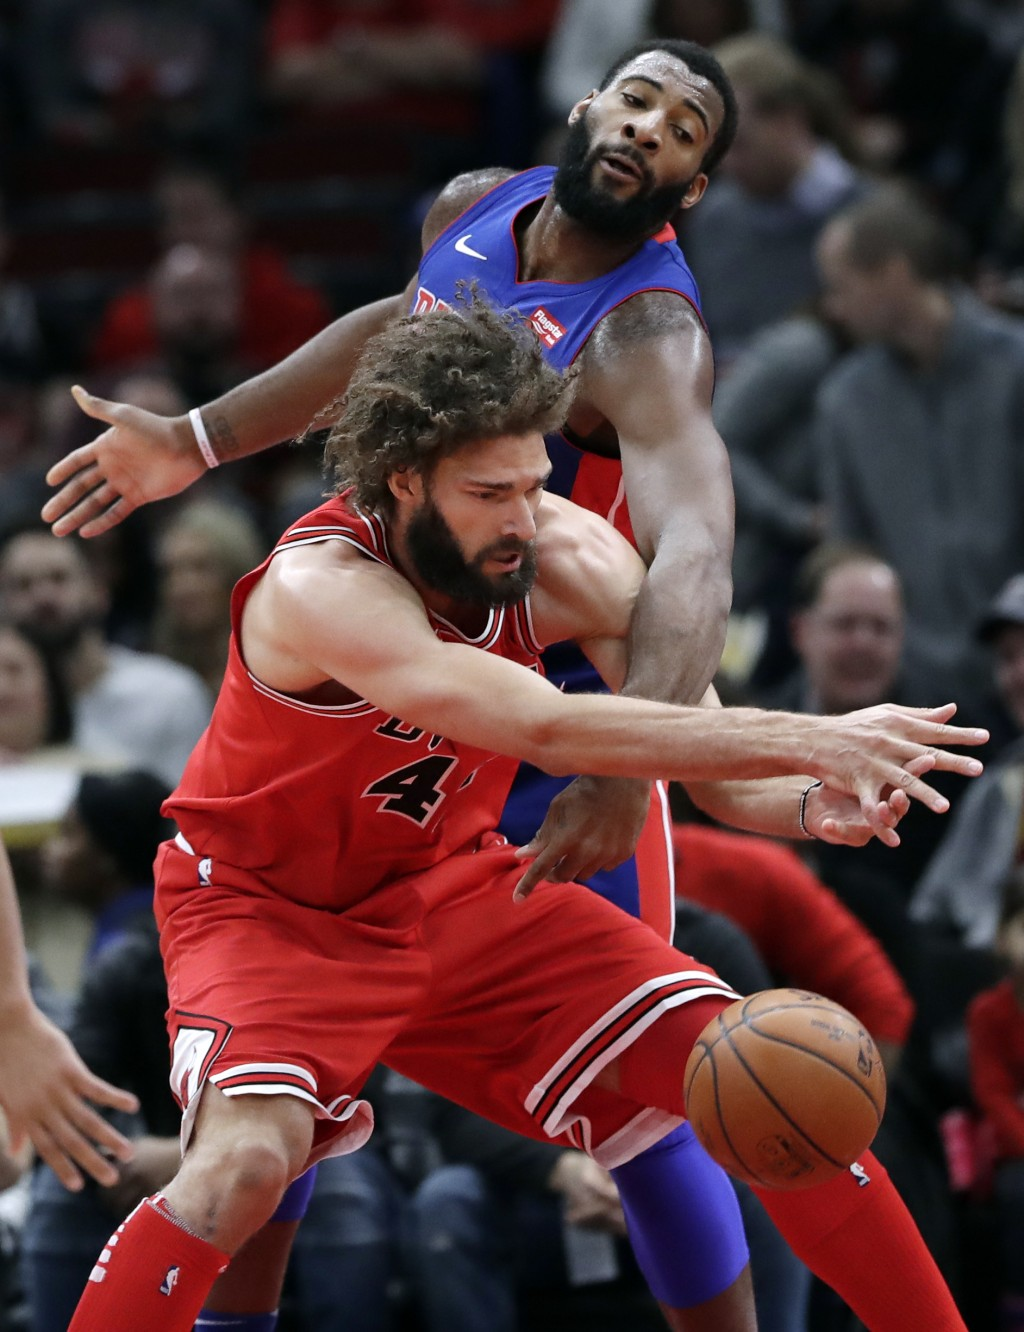 Detroit Pistons center Andre Drummond, top, and Chicago Bulls center Robin Lopez battle for the ball during the first half of an NBA basketball game S